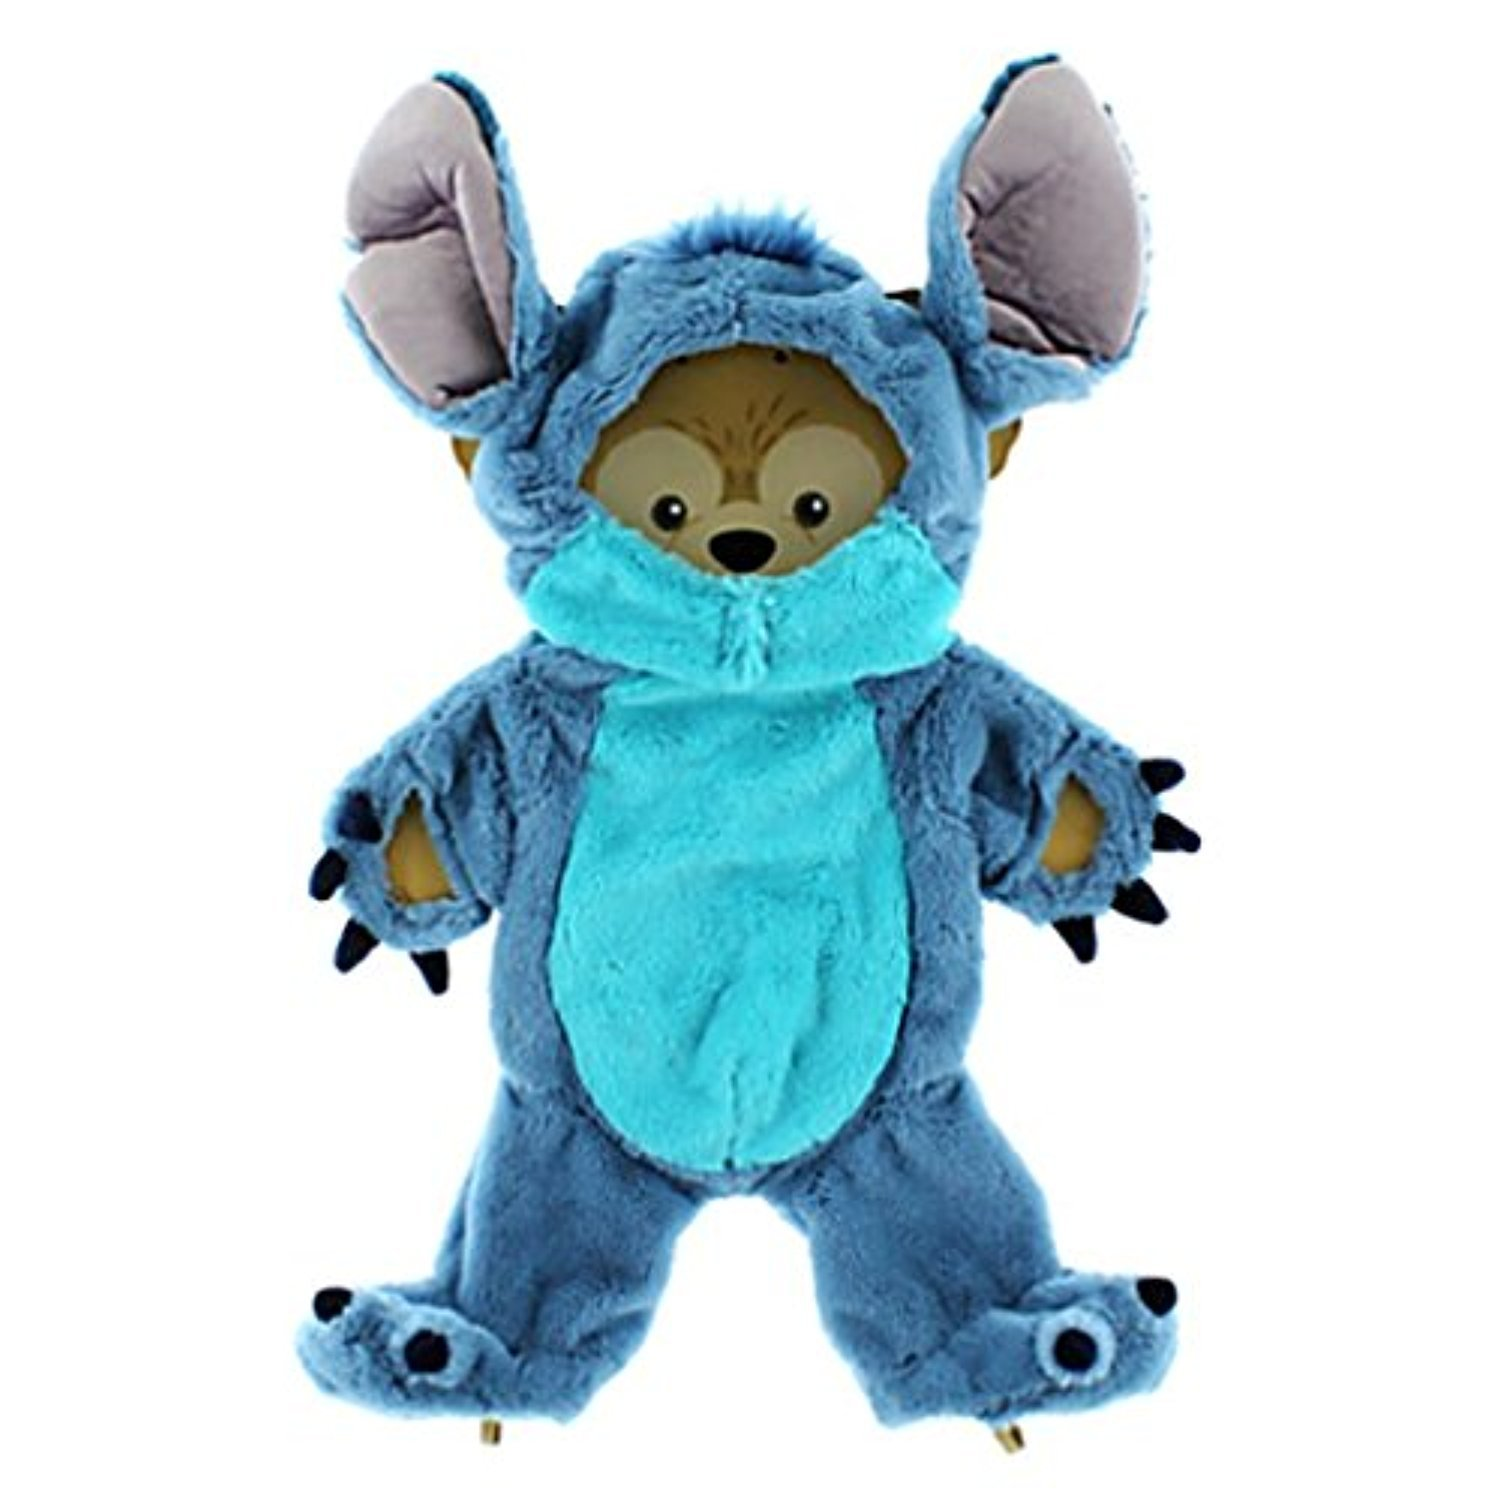 ◎送料込み◎ Duffy the Disney Bear Stitch Costume - 17''